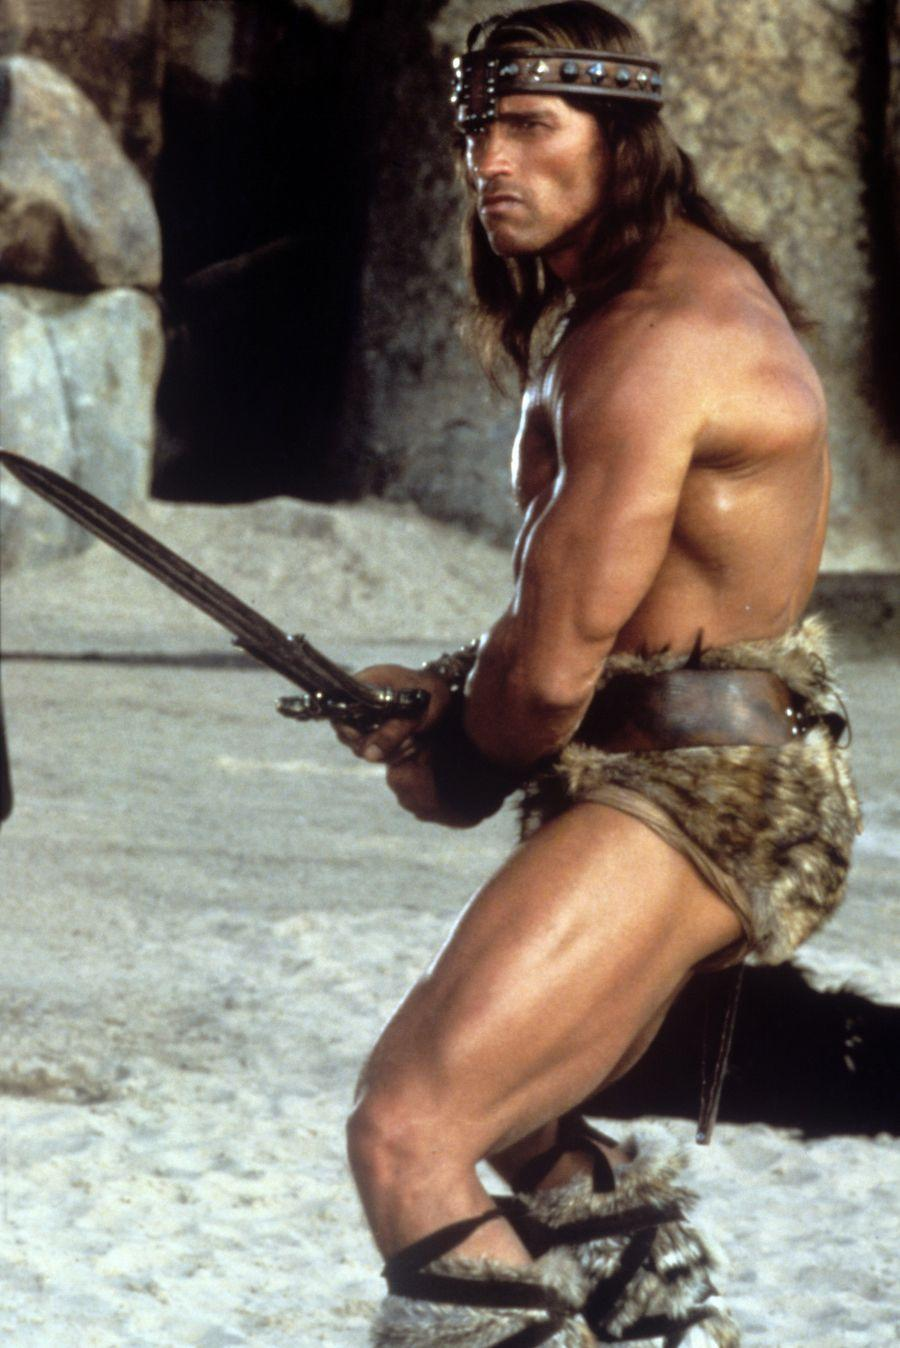 <p>Interestingly, the '80s brought a whole new vocabulary for describing the male physique. And the buff-est of them all? Arnold.</p>